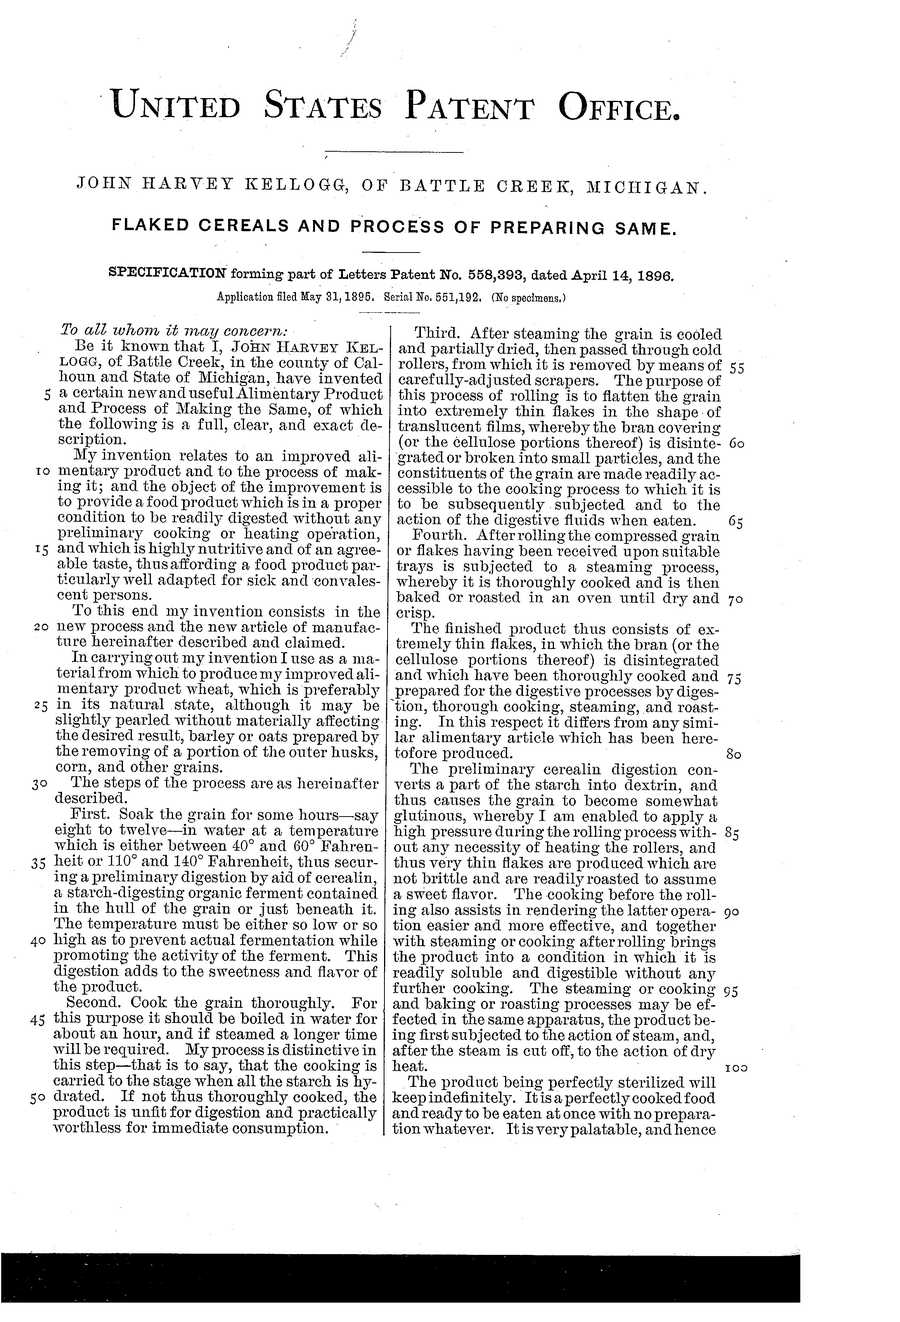 The patent for Kellogg's corn flakes was issued on April 14, 1896.